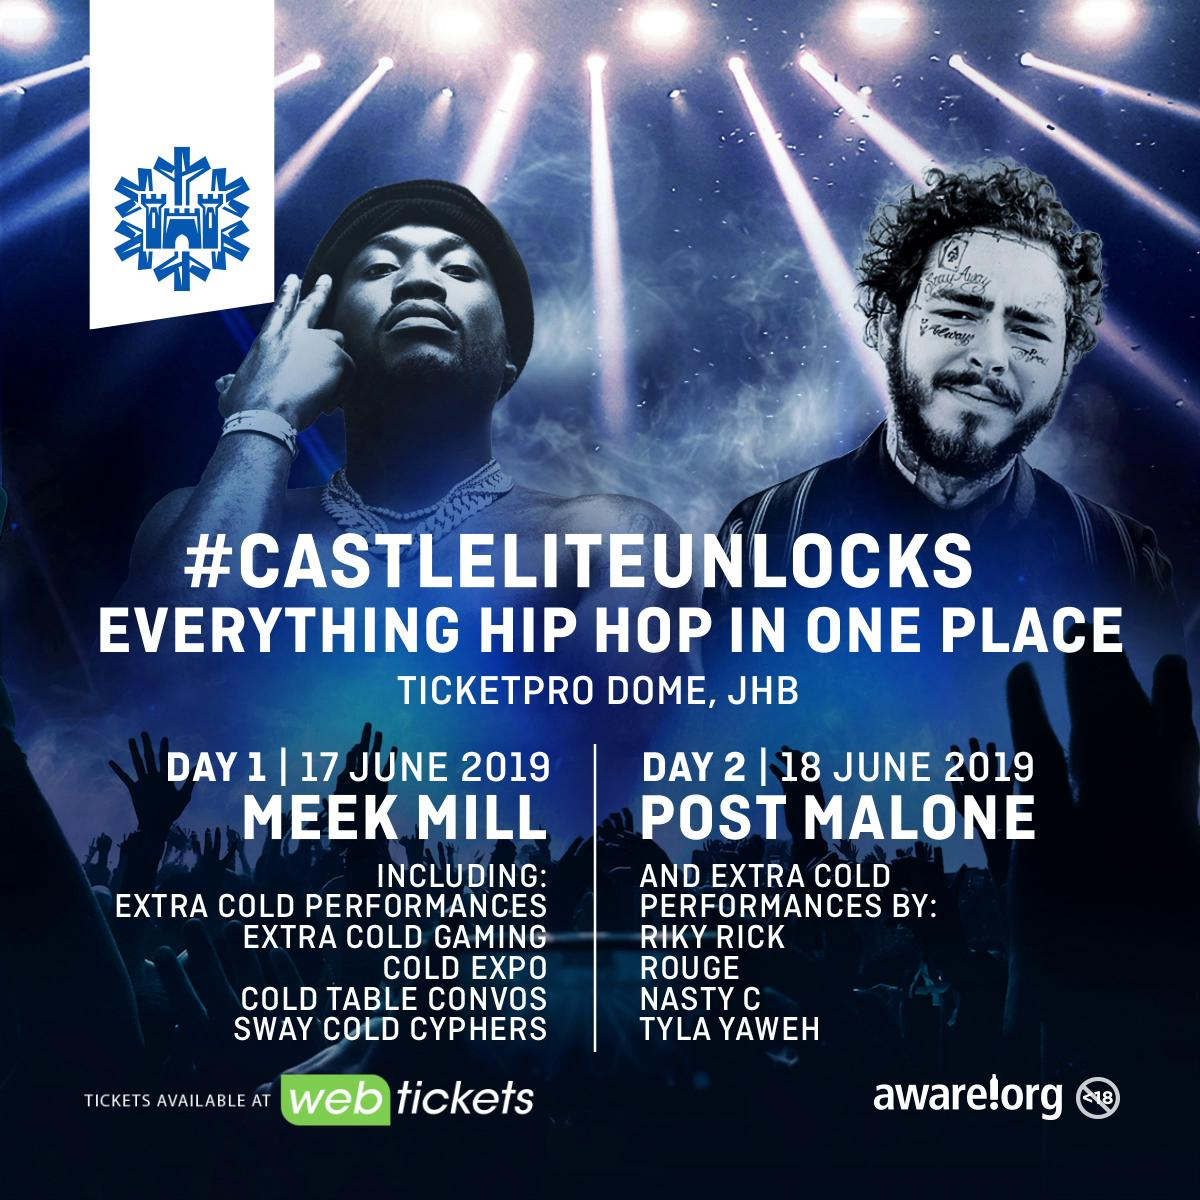 #castleliteunlocks WHAT TO EXPECT FROM THE EXCLUSIVE DM CUSTOM SNEAKER x #CASTLELITEUNLOCKS COLLAB D8sBbp4WwAEzydo